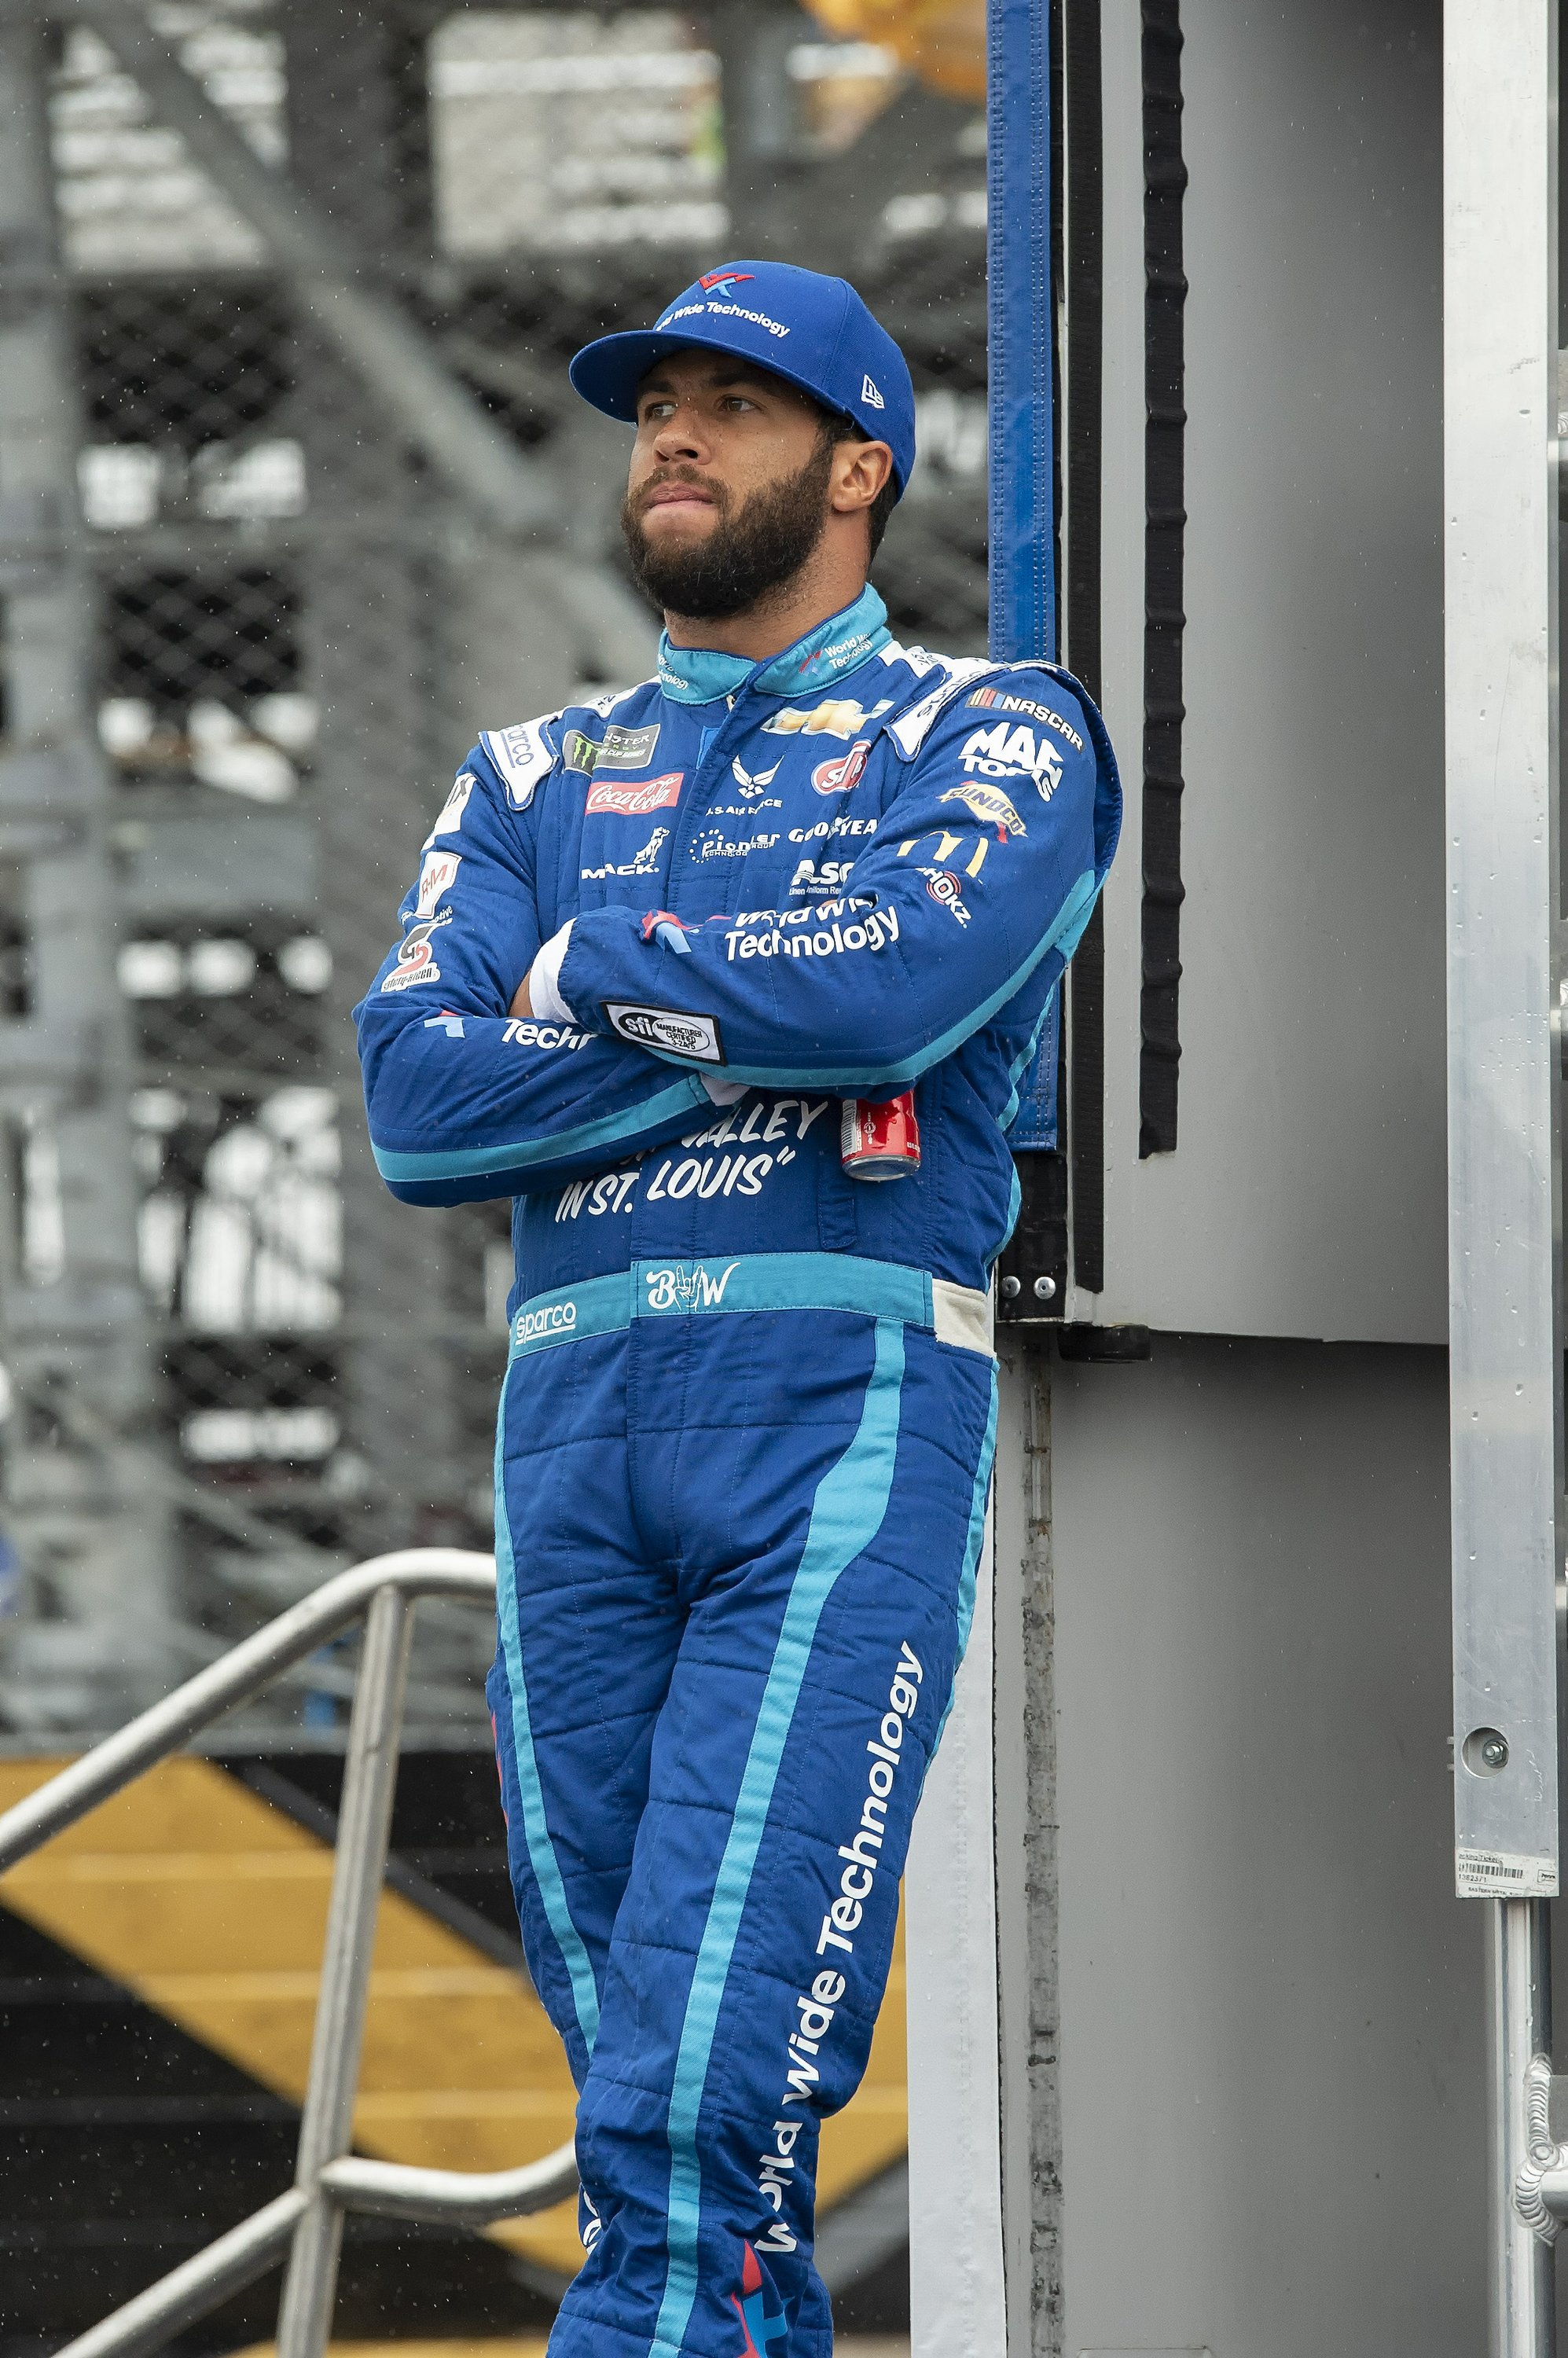 NASCAR's Bubba Wallace struggling with depression